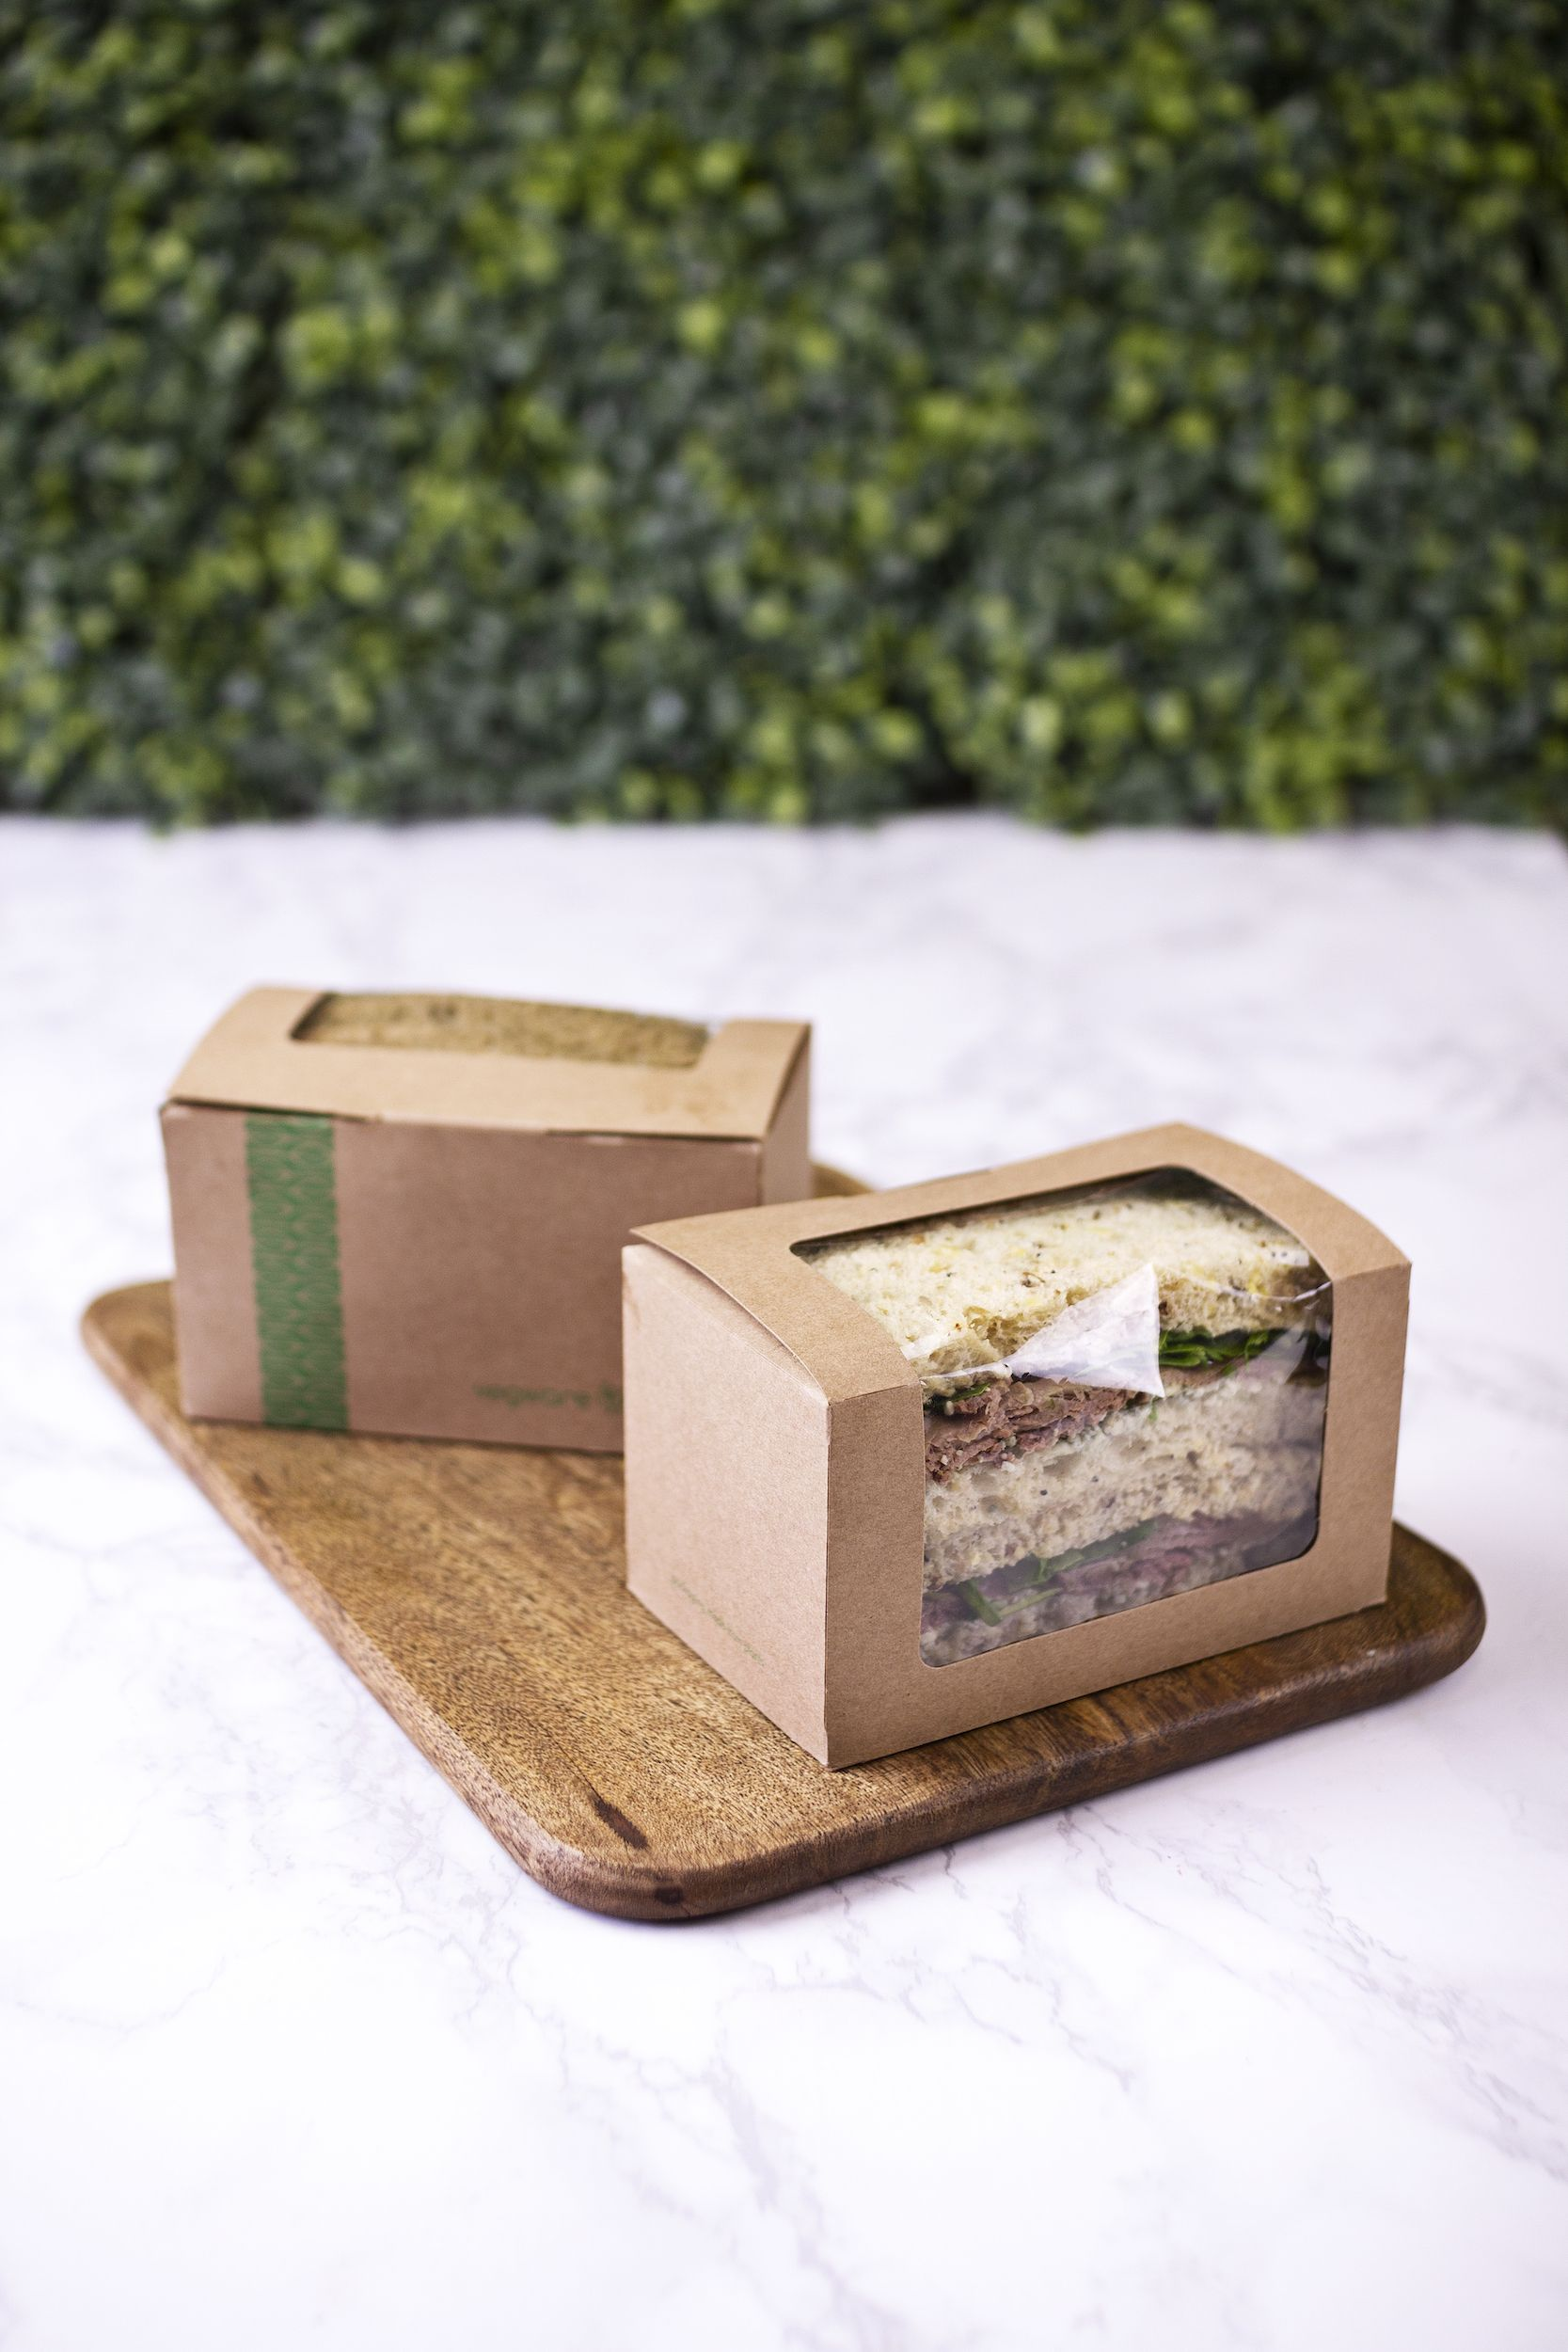 Certified 100 compostable made from plants not plastic